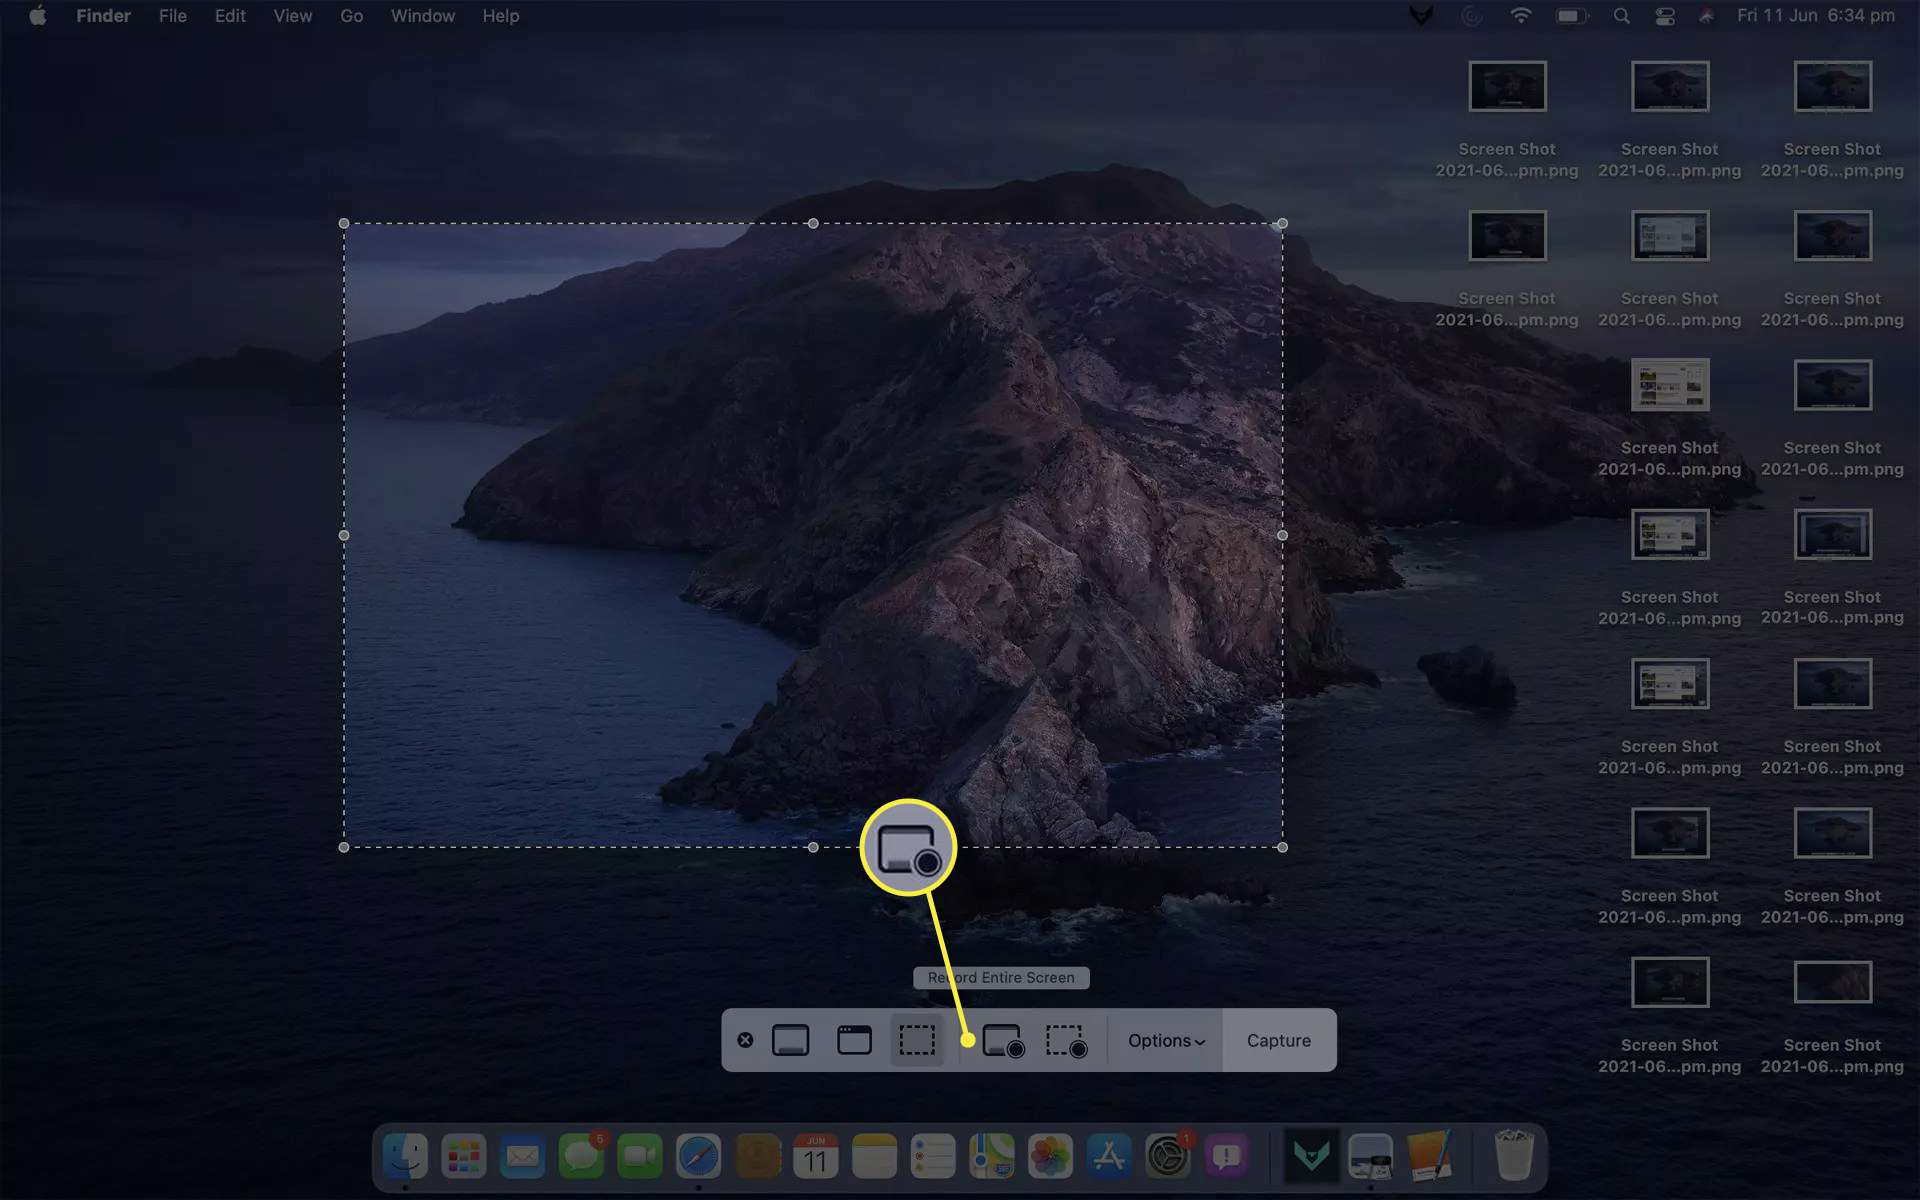 Mac screenshot app on MacBook Air with Record Entire Screen option selected